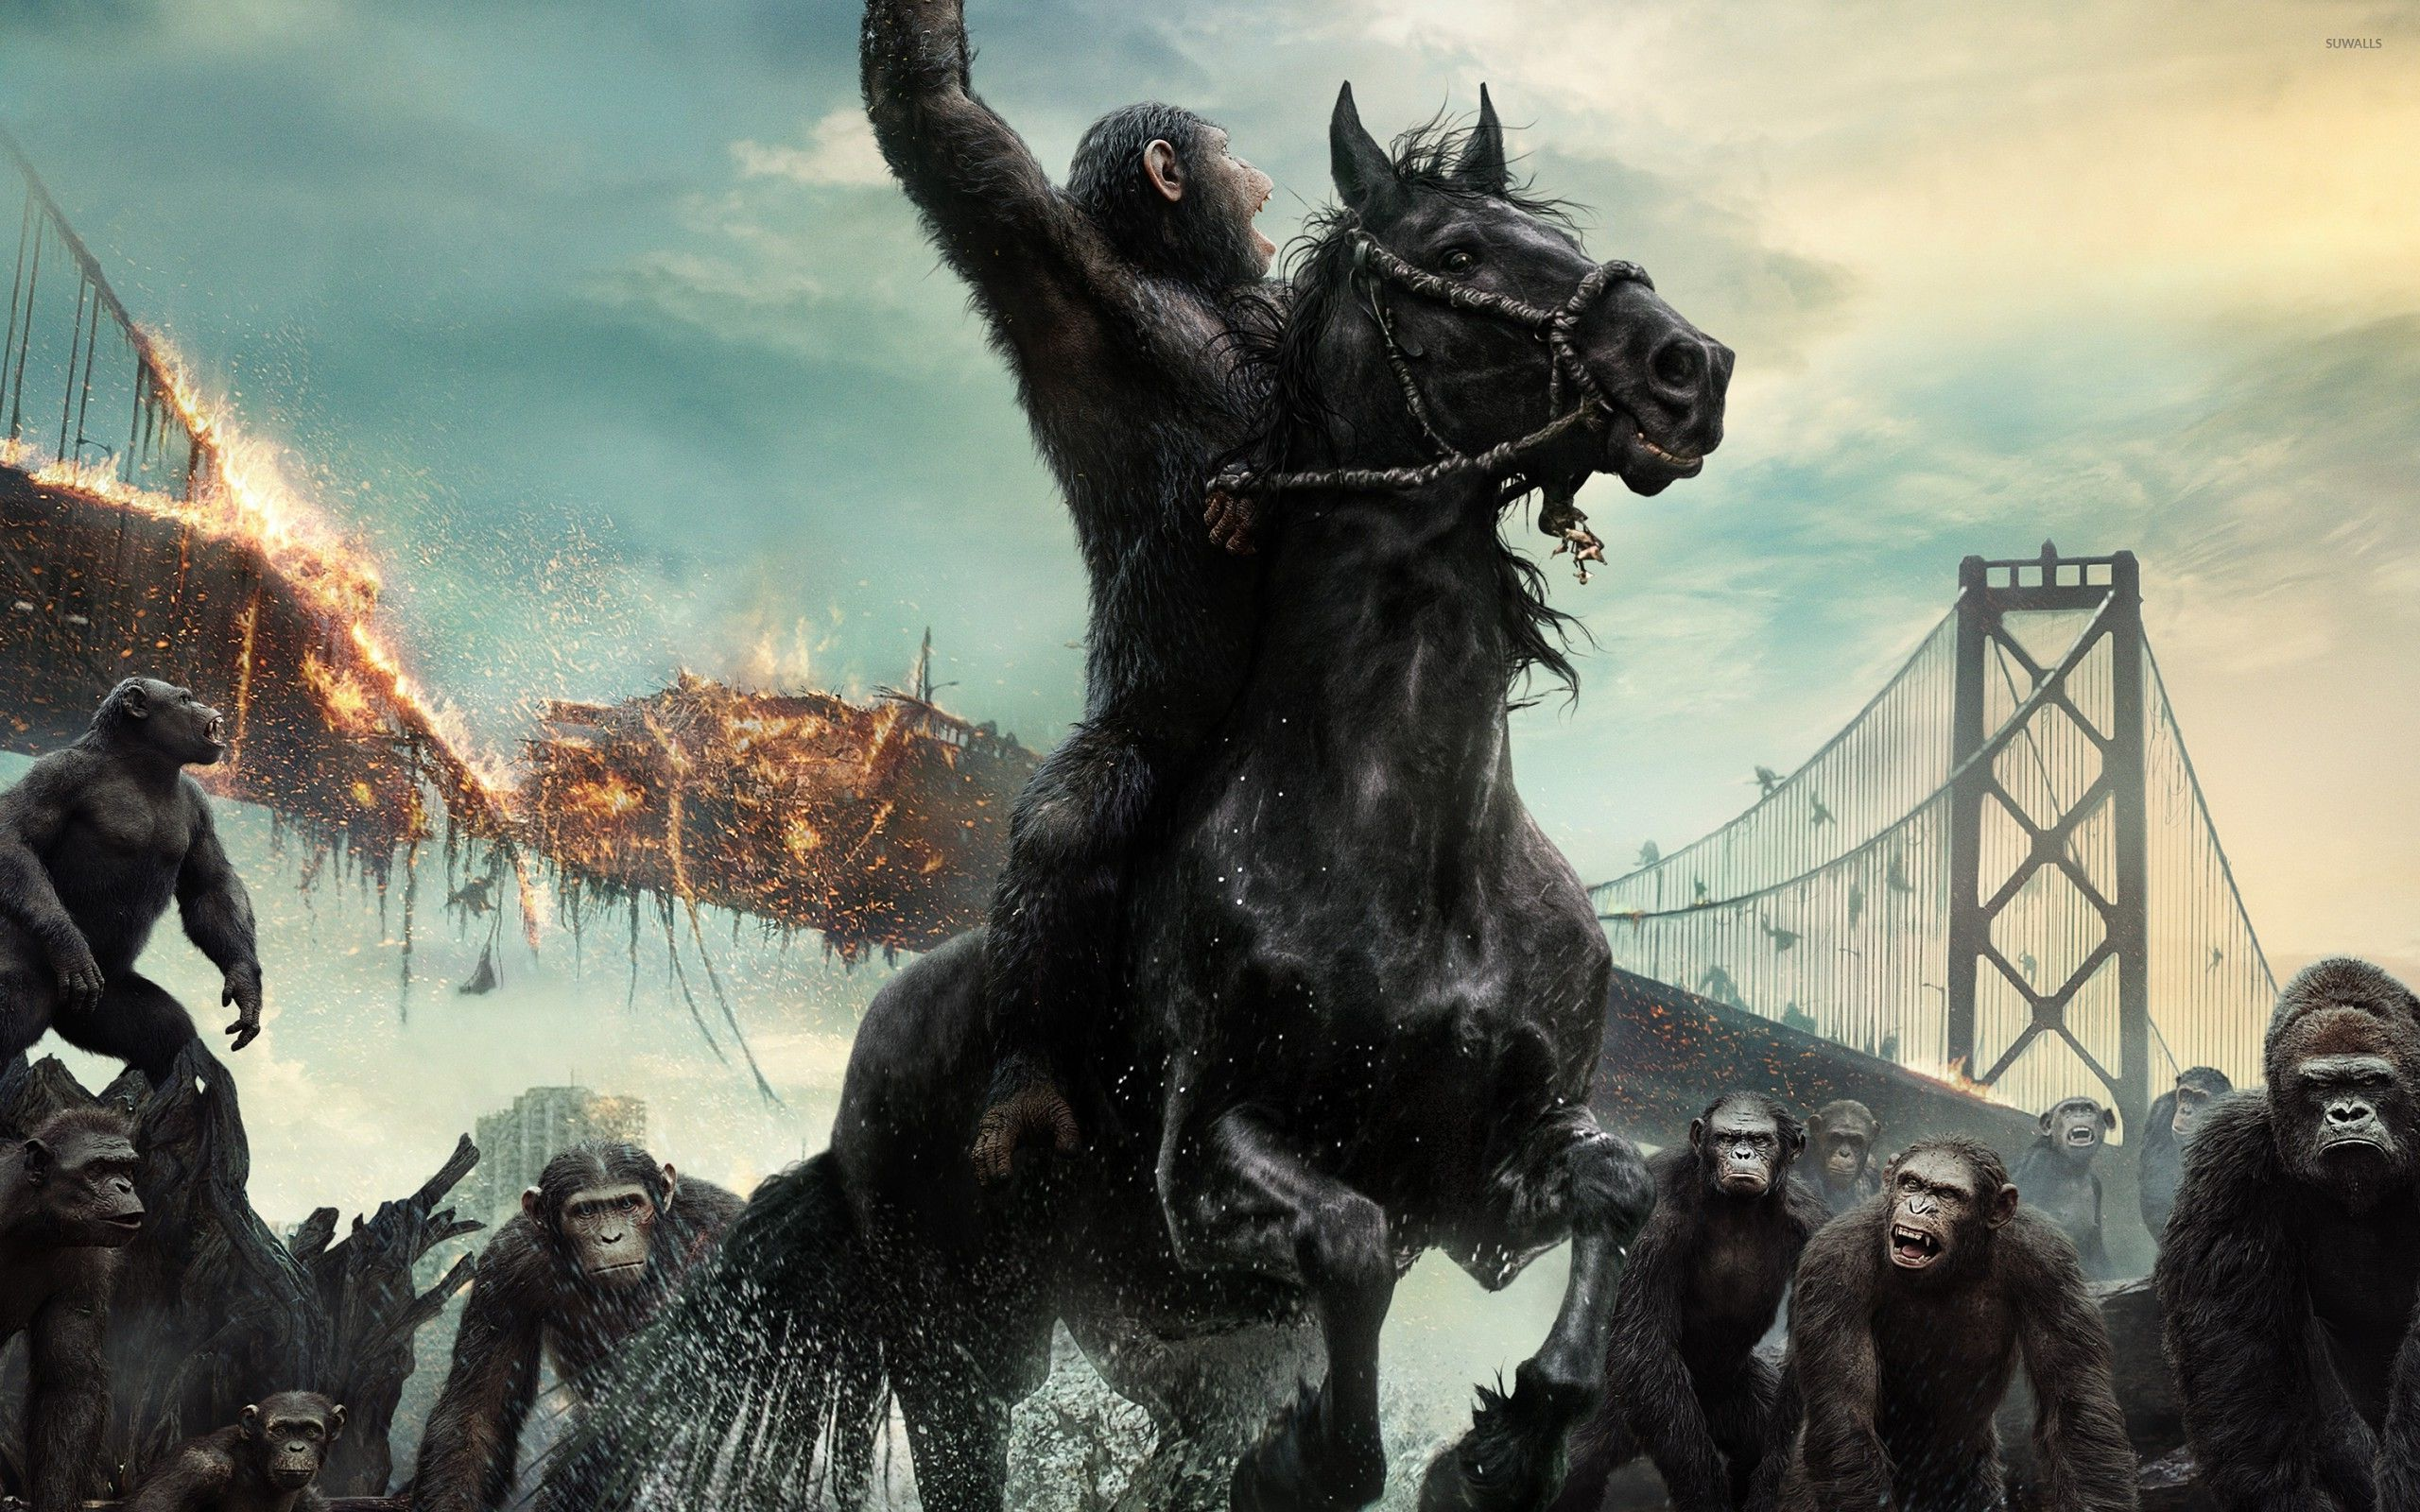 Caesar In Dawn Of The Planet Of The Apes Wallpaper Movie